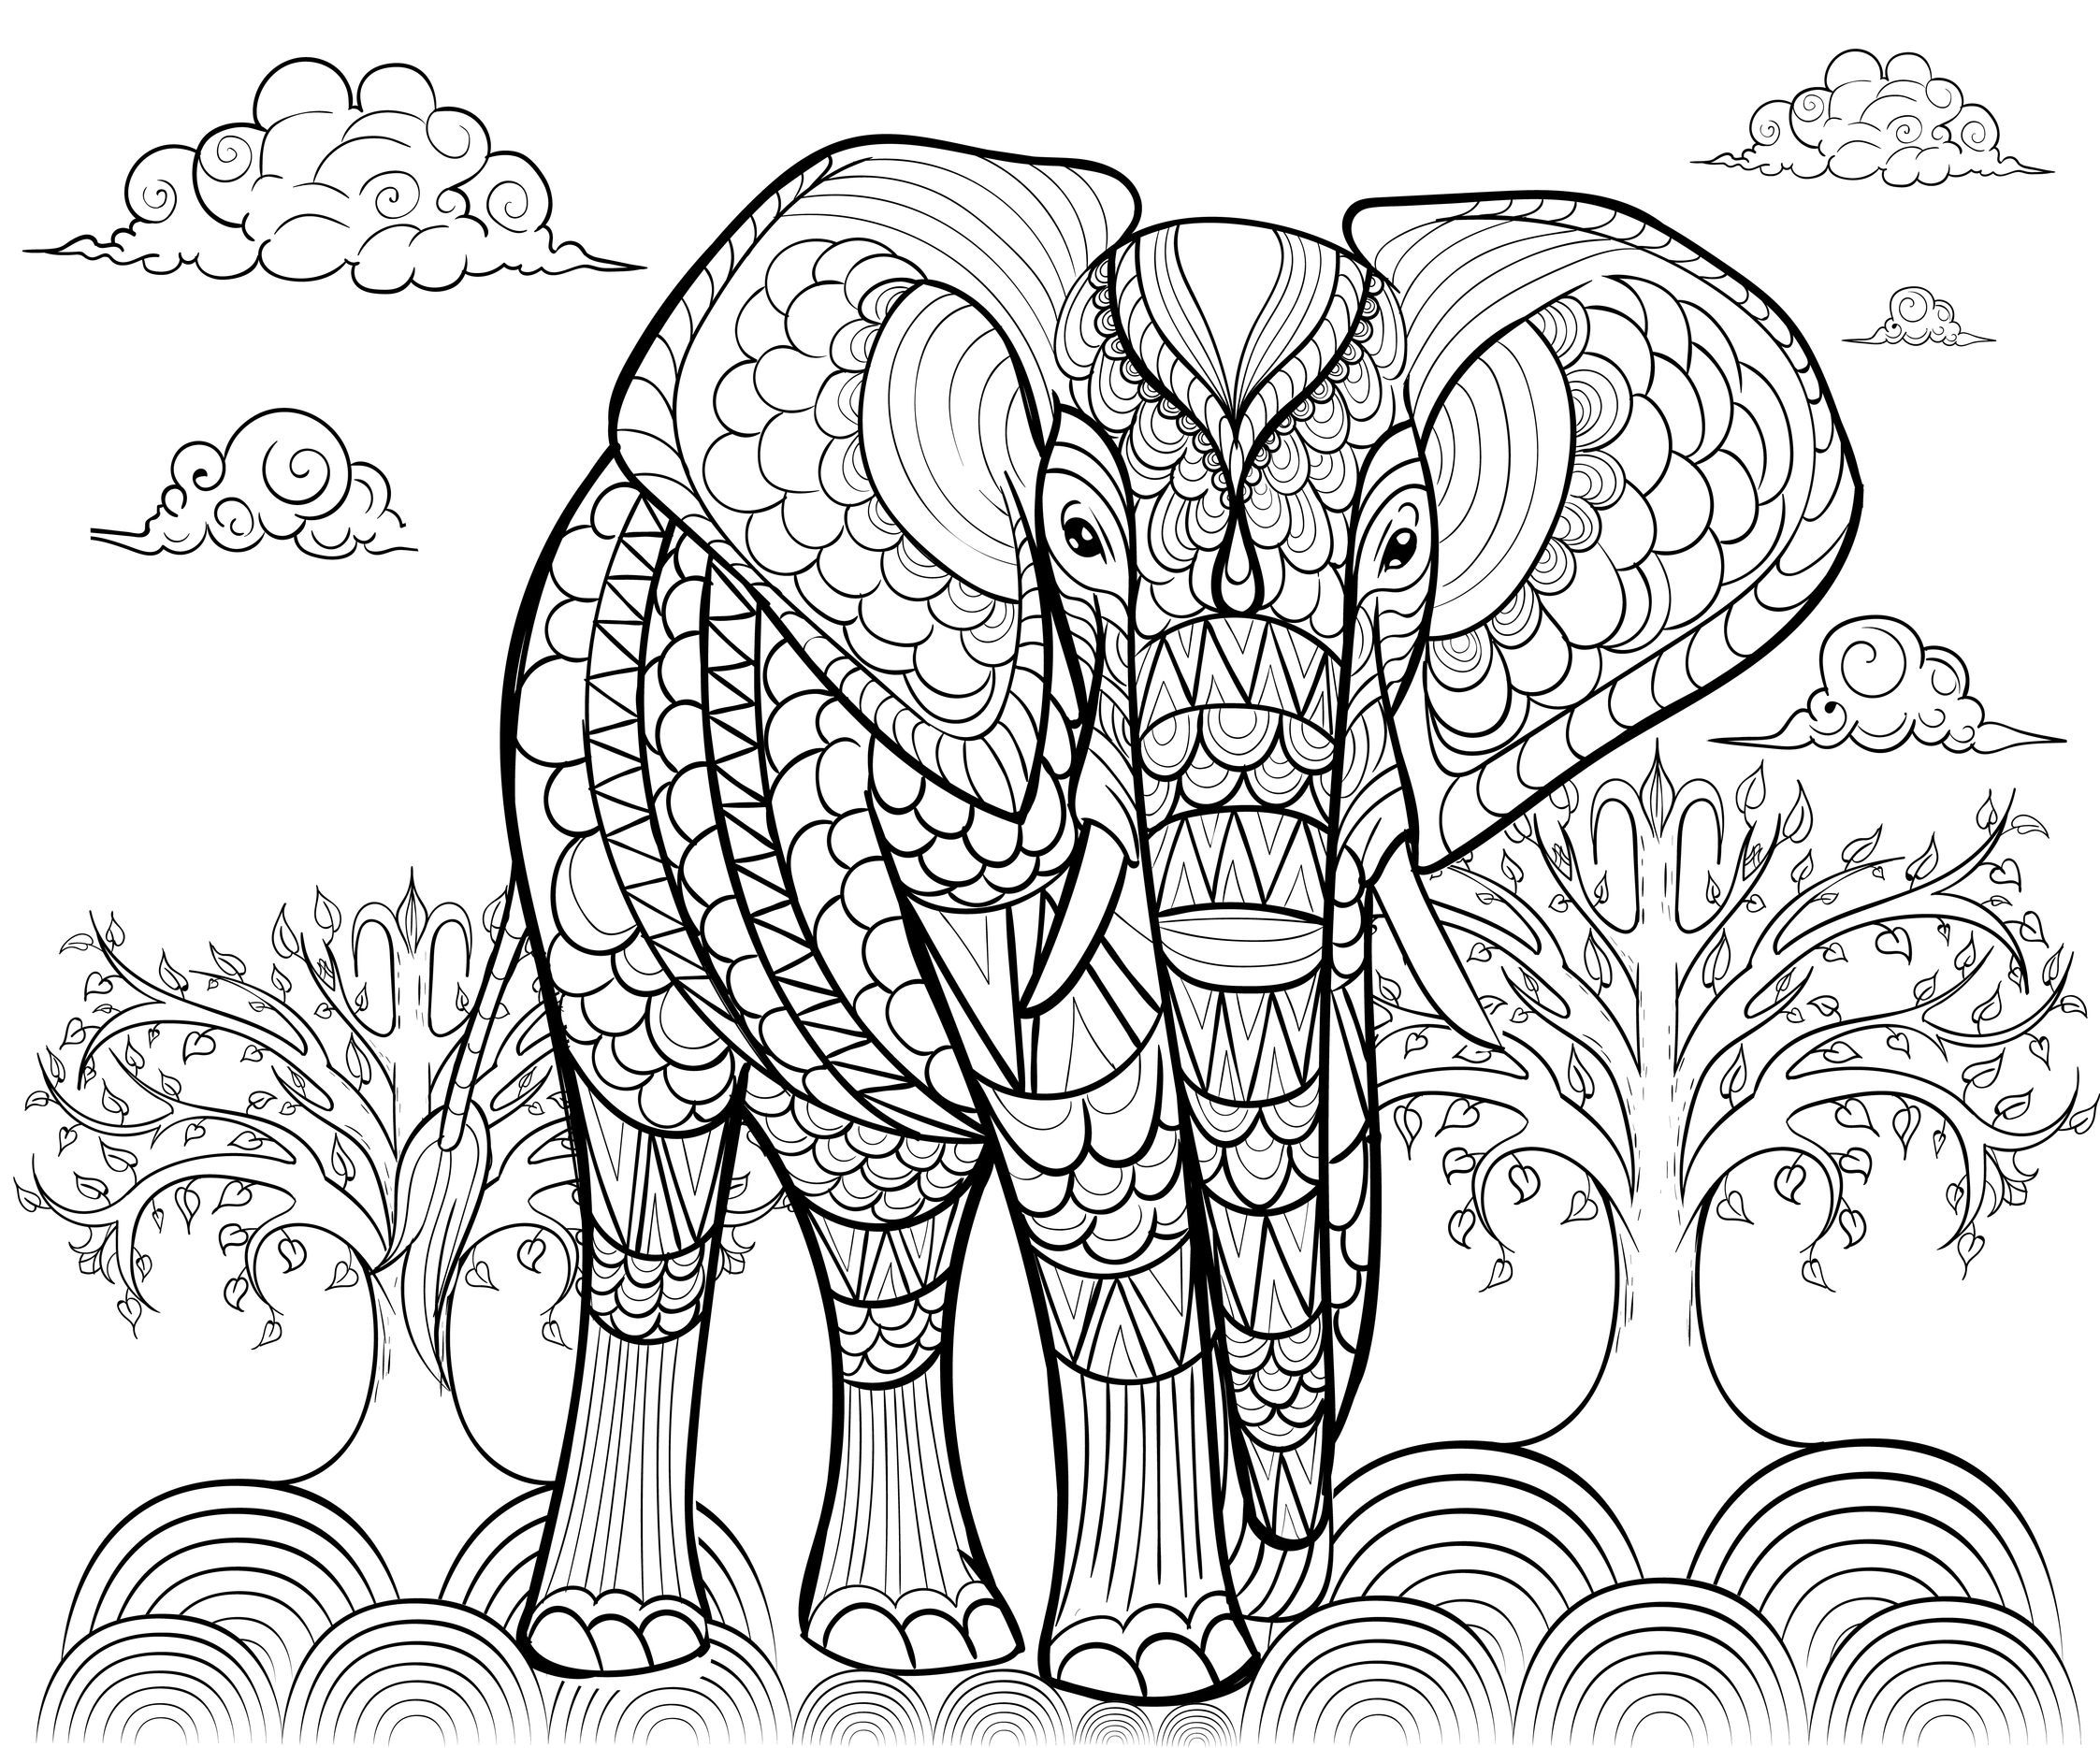 Elephant By Alfadanz Elephants Coloring Pages For Adults Just Color Elephant Coloring Page Animal Coloring Pages Mandala Coloring Pages